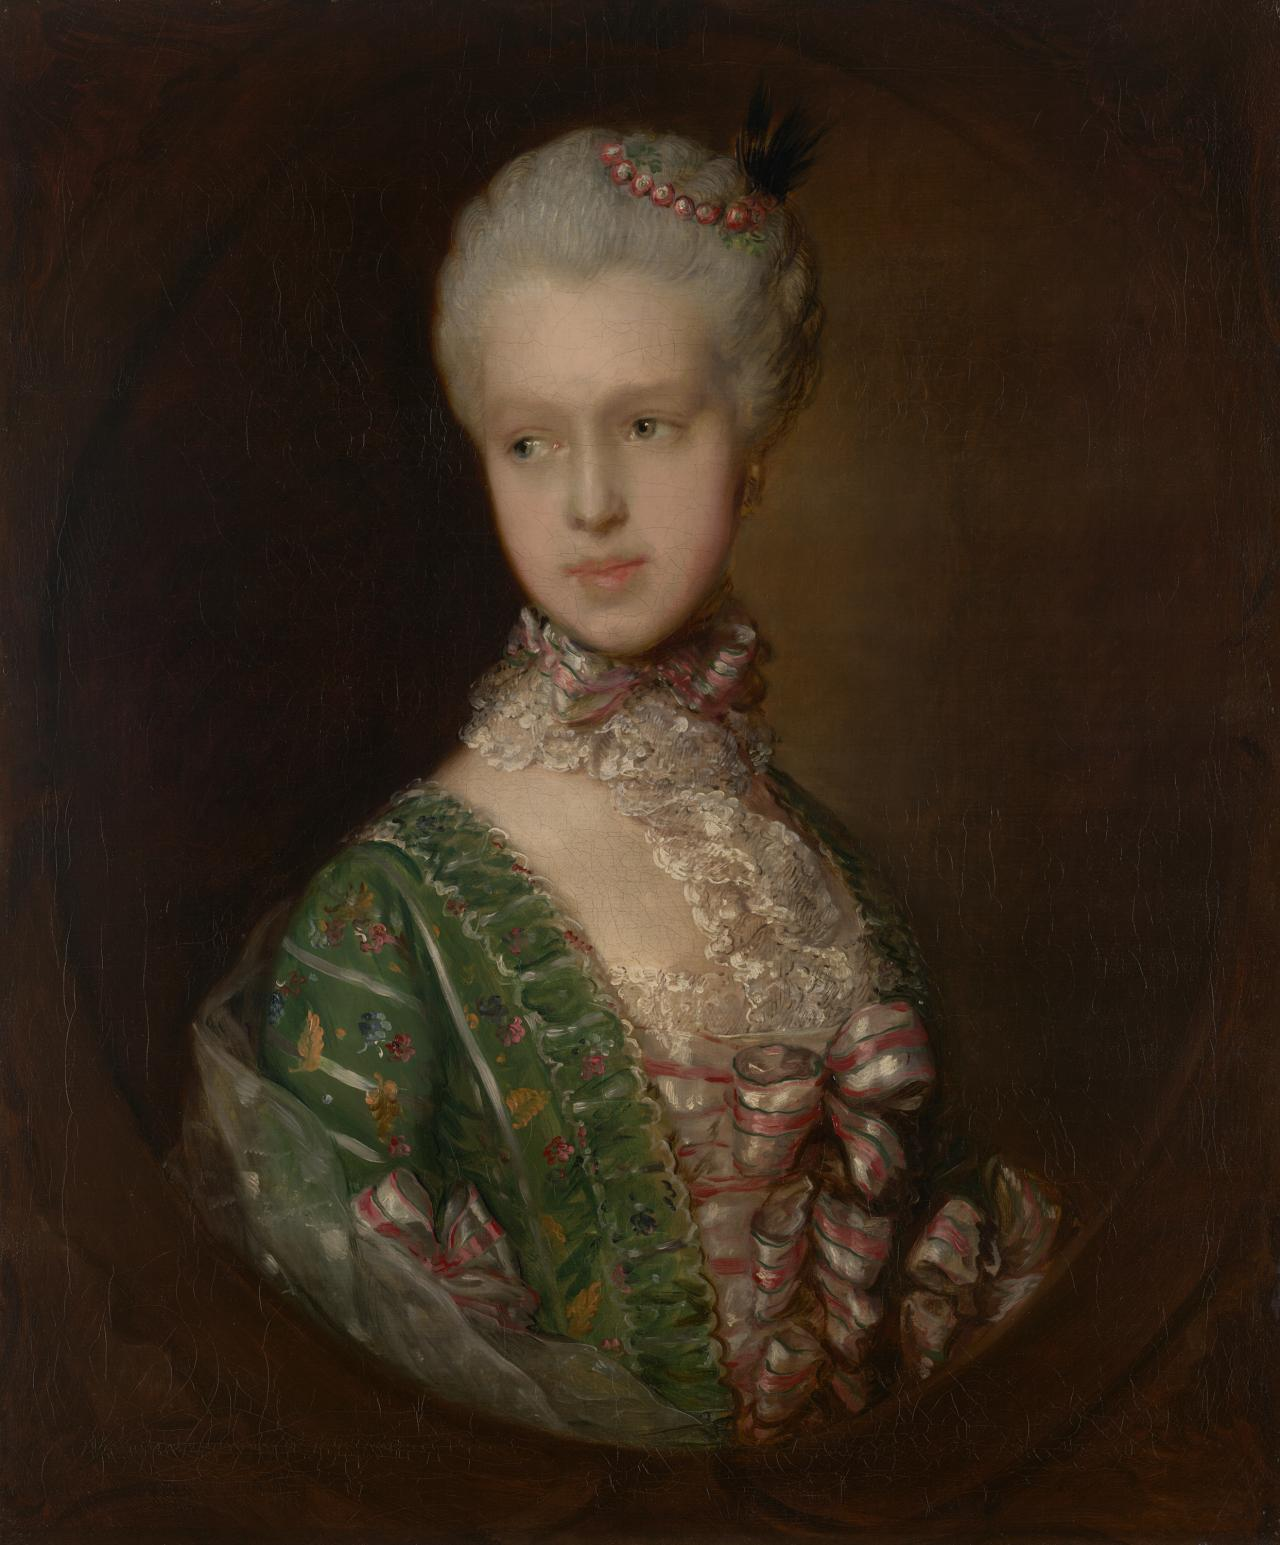 Elizabeth Wrottesley, later Duchess of Grafton